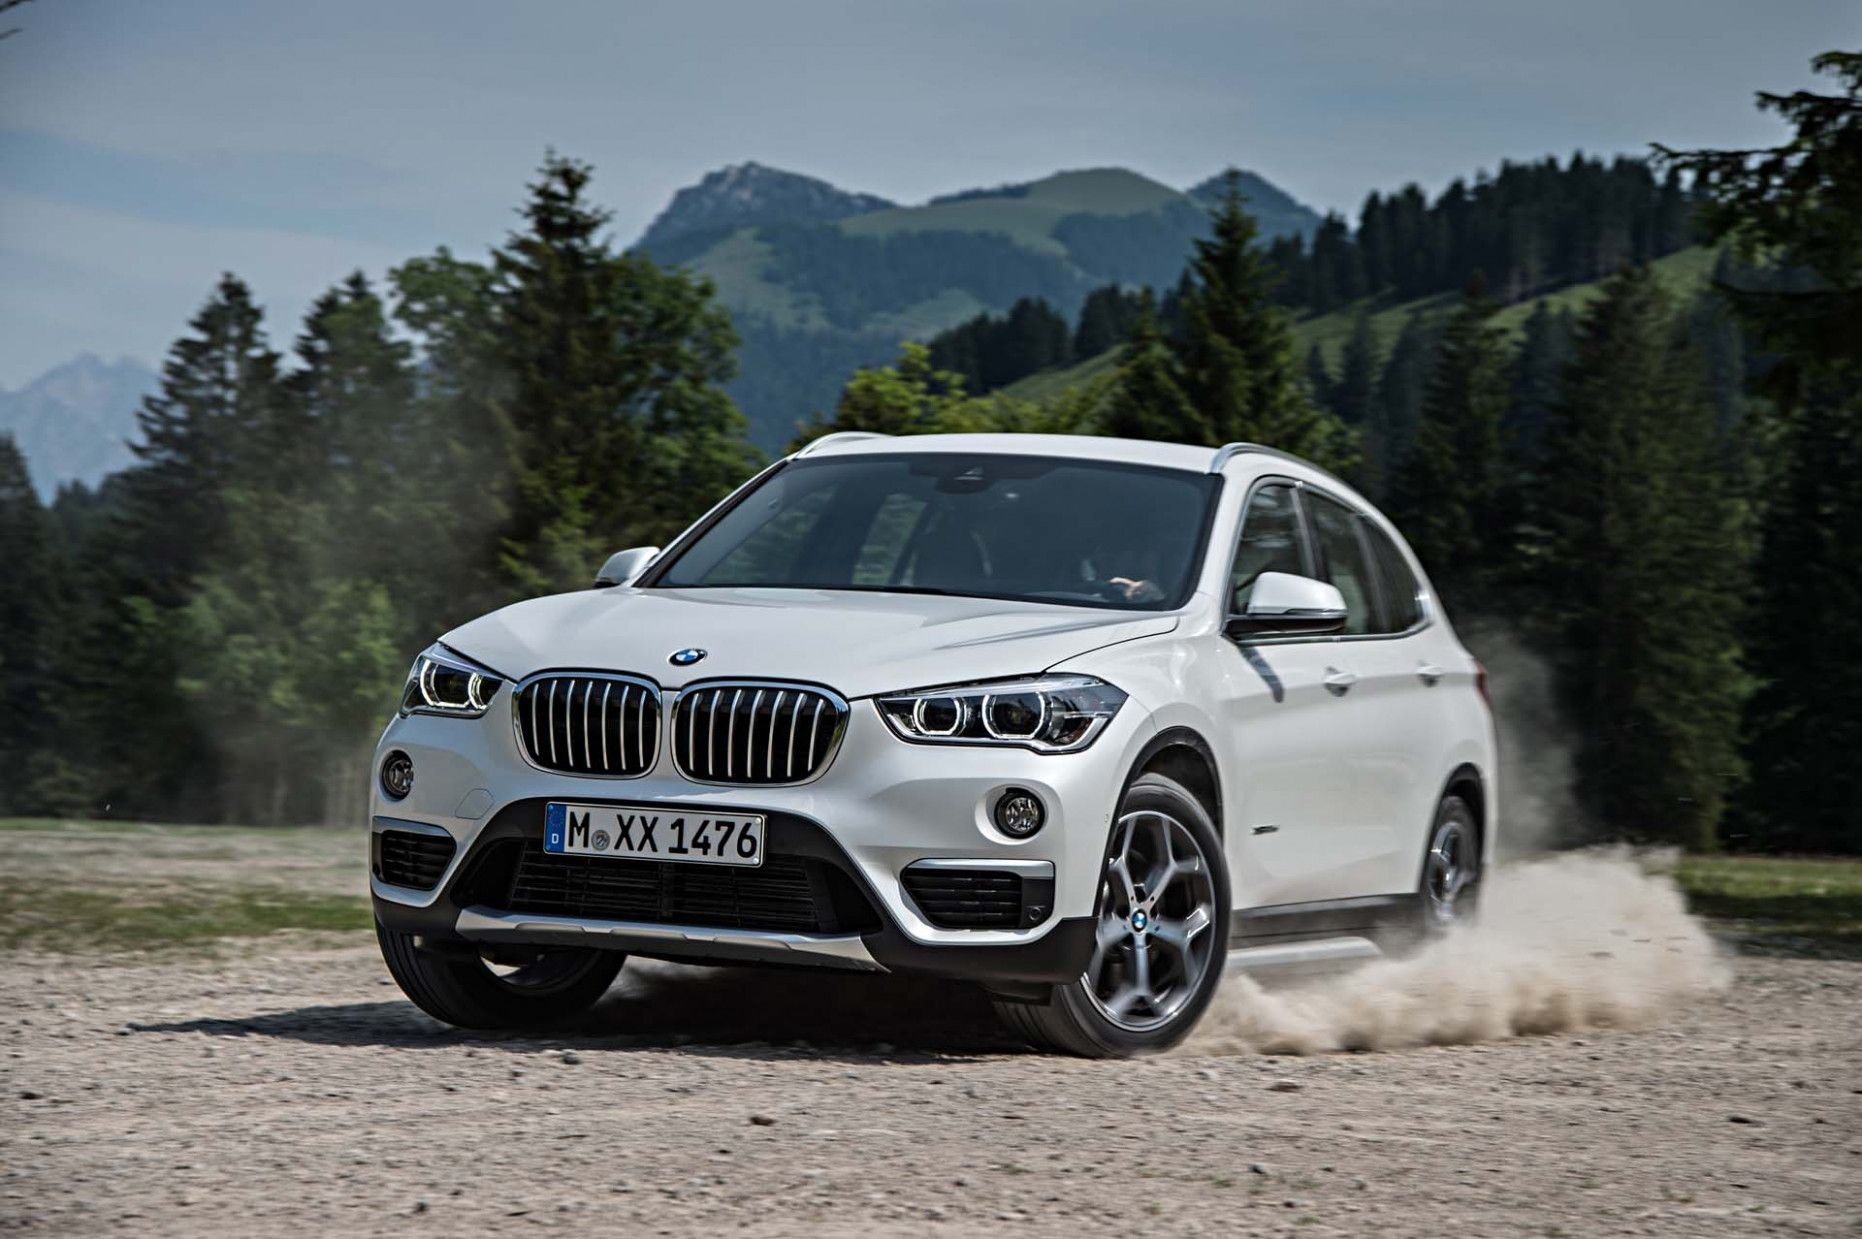 What Will Bmw X1111 1111 61111 Be Like In The Next 51111 Years Bmw X11 11 611 Https Ift Tt 2oqid5q